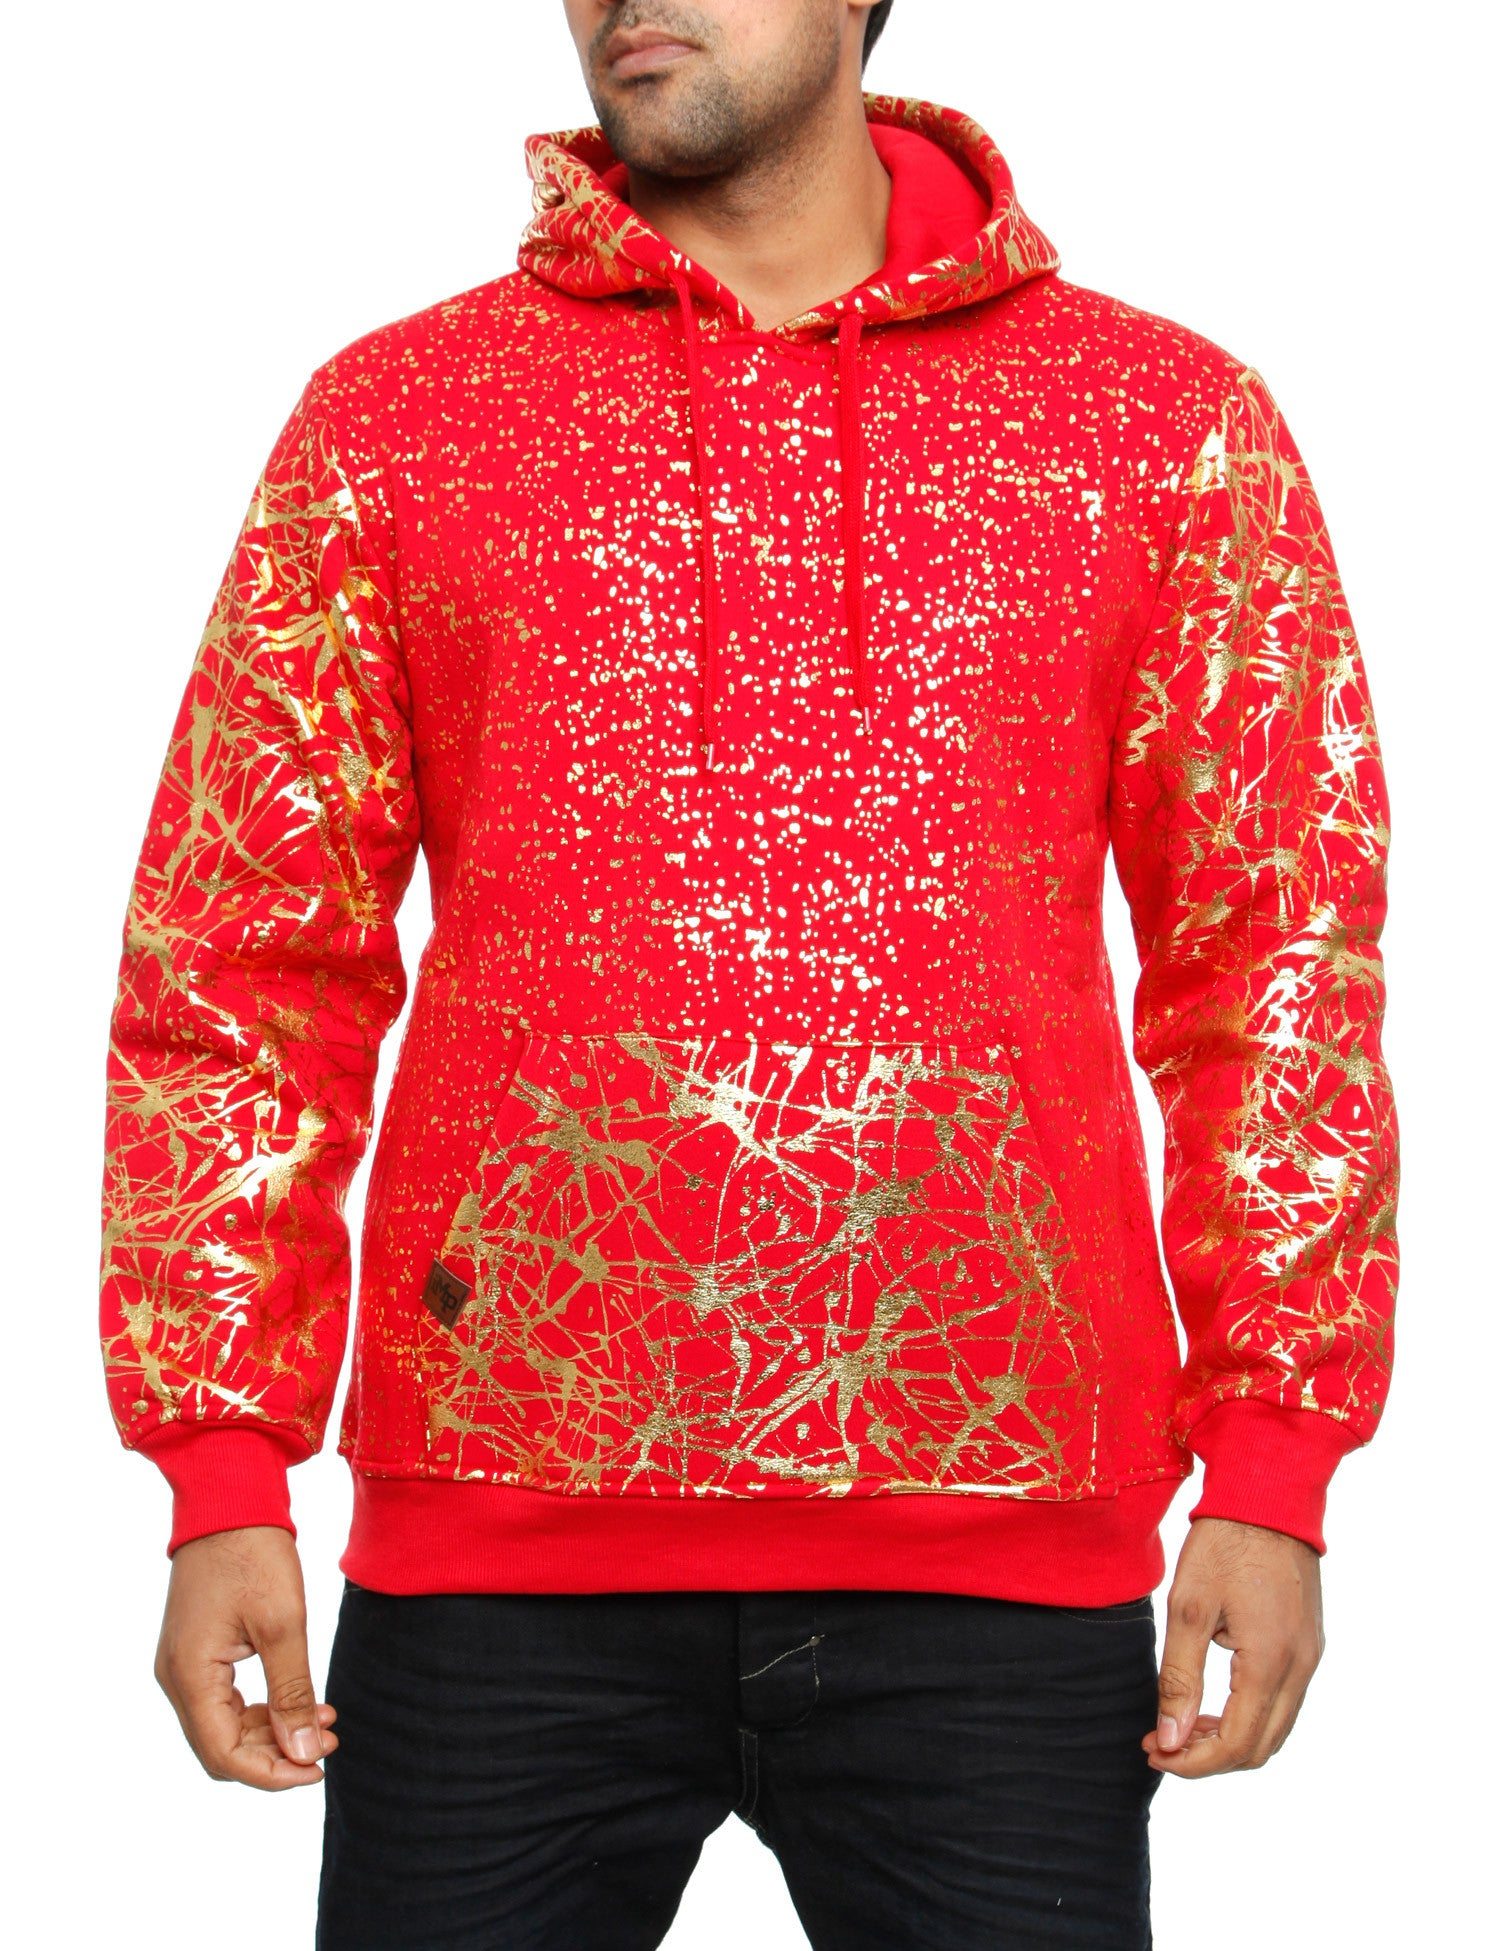 Imperious ?Gold Splatter? Hoody HS549 Red